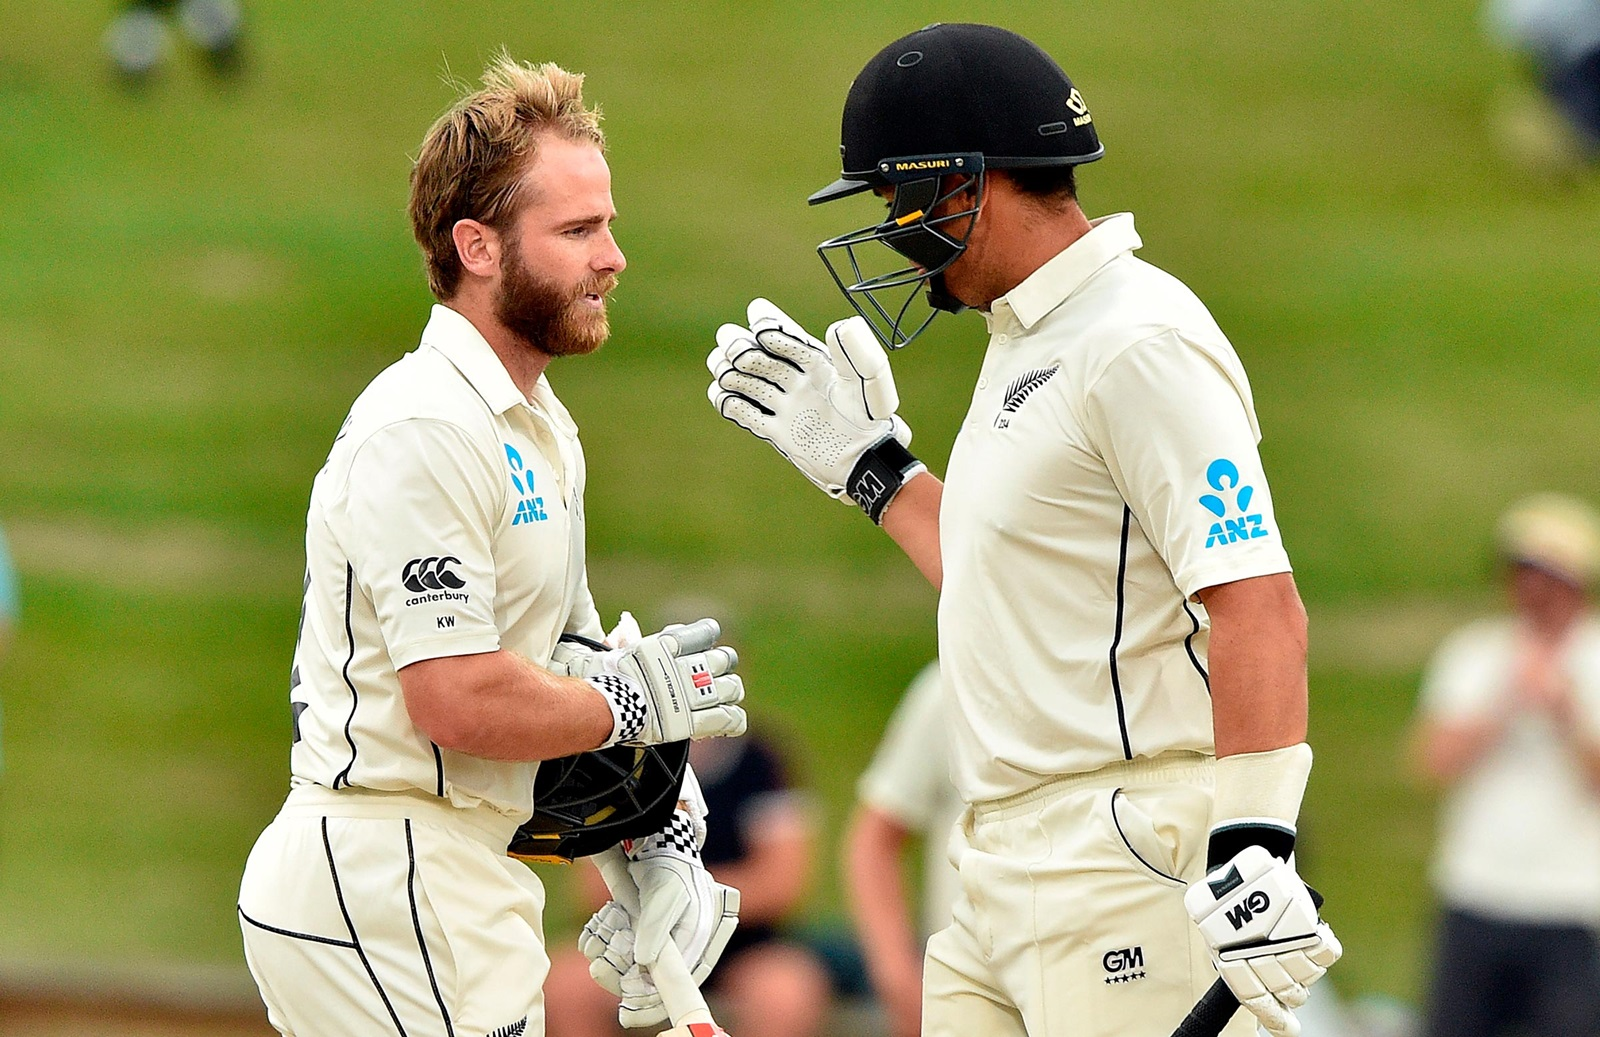 New Zealand not looking for excuses in Australia | cricket.com.au